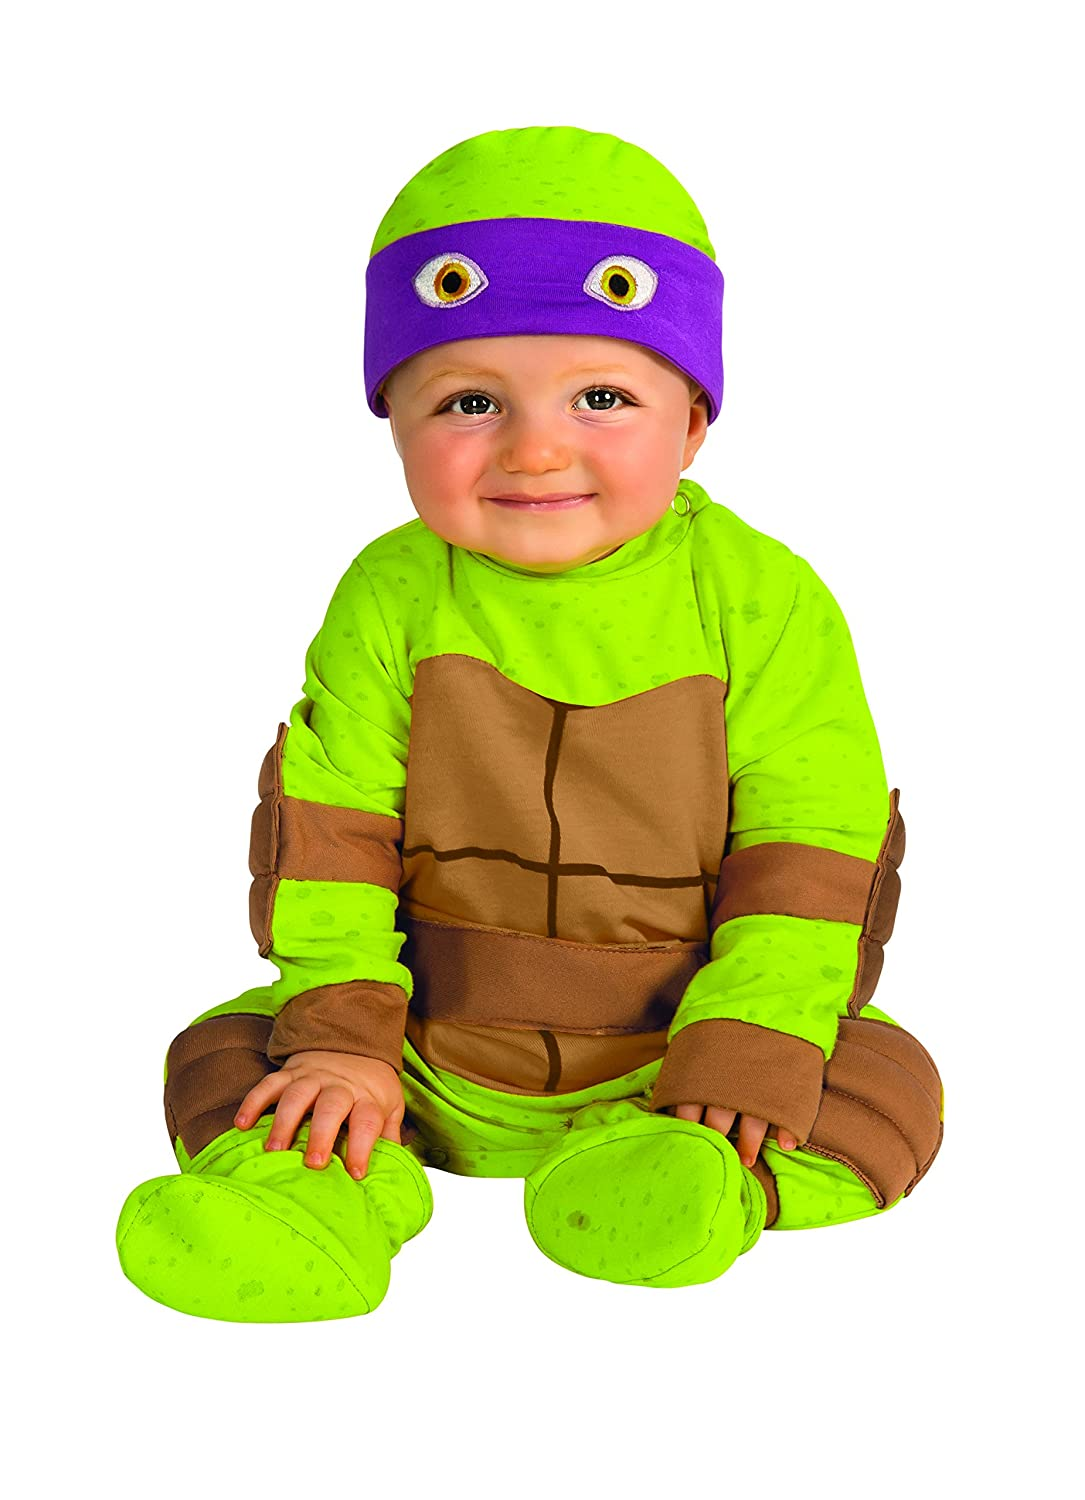 Amazon.com Rubieu0027s Costume Babyu0027s Teenage Mutant Ninja Turtles Animated Series Baby Costume Clothing  sc 1 st  Amazon.com & Amazon.com: Rubieu0027s Costume Babyu0027s Teenage Mutant Ninja Turtles ...